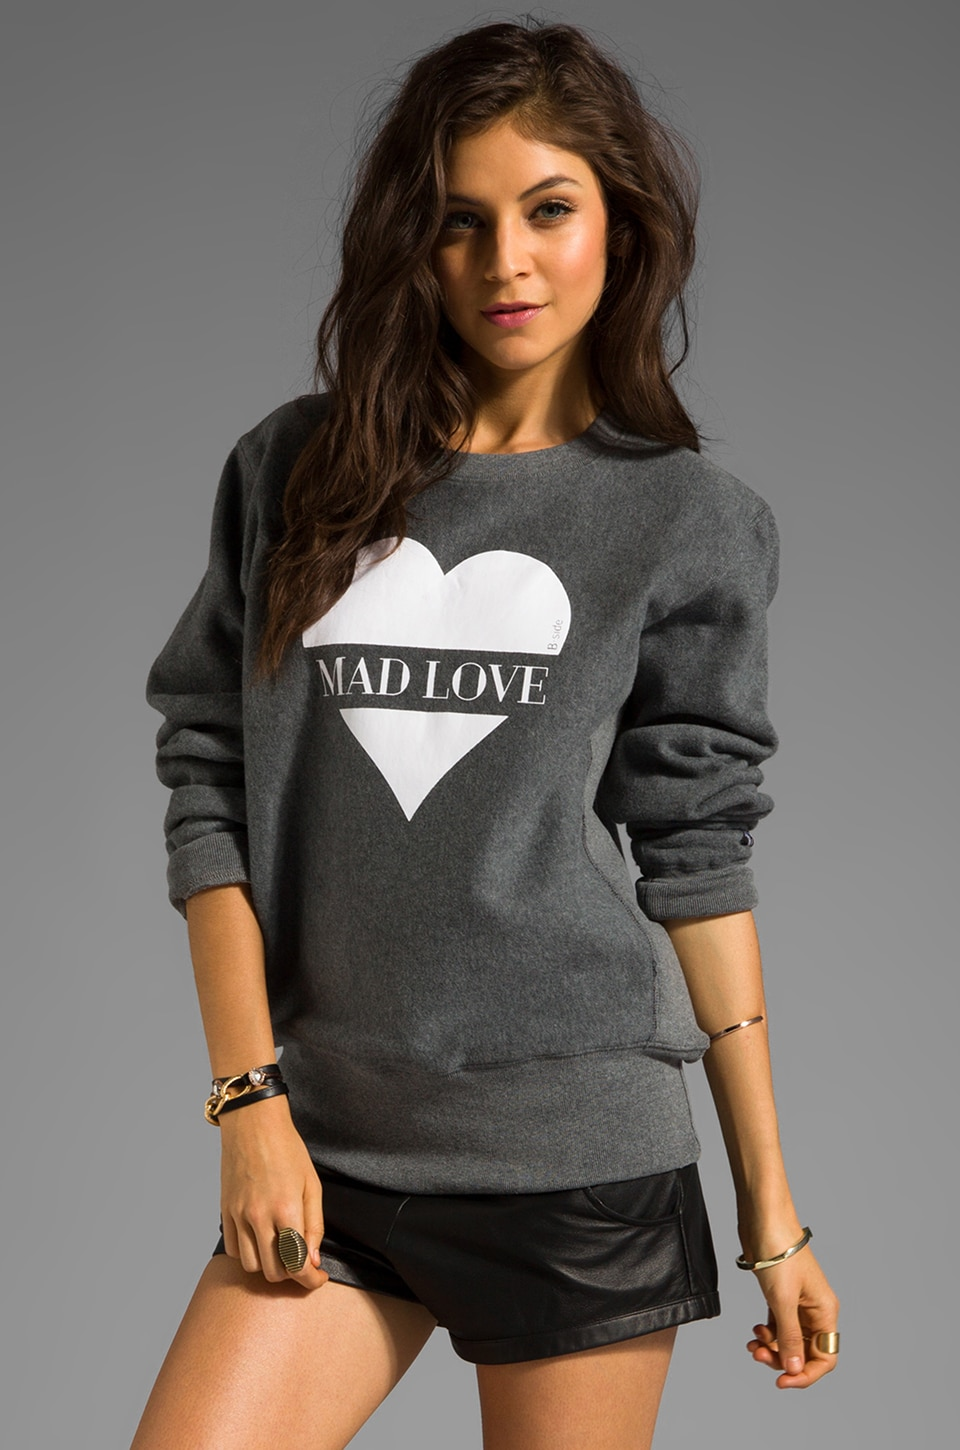 B-side by Wale Mad Love Sweatshirt in Grey